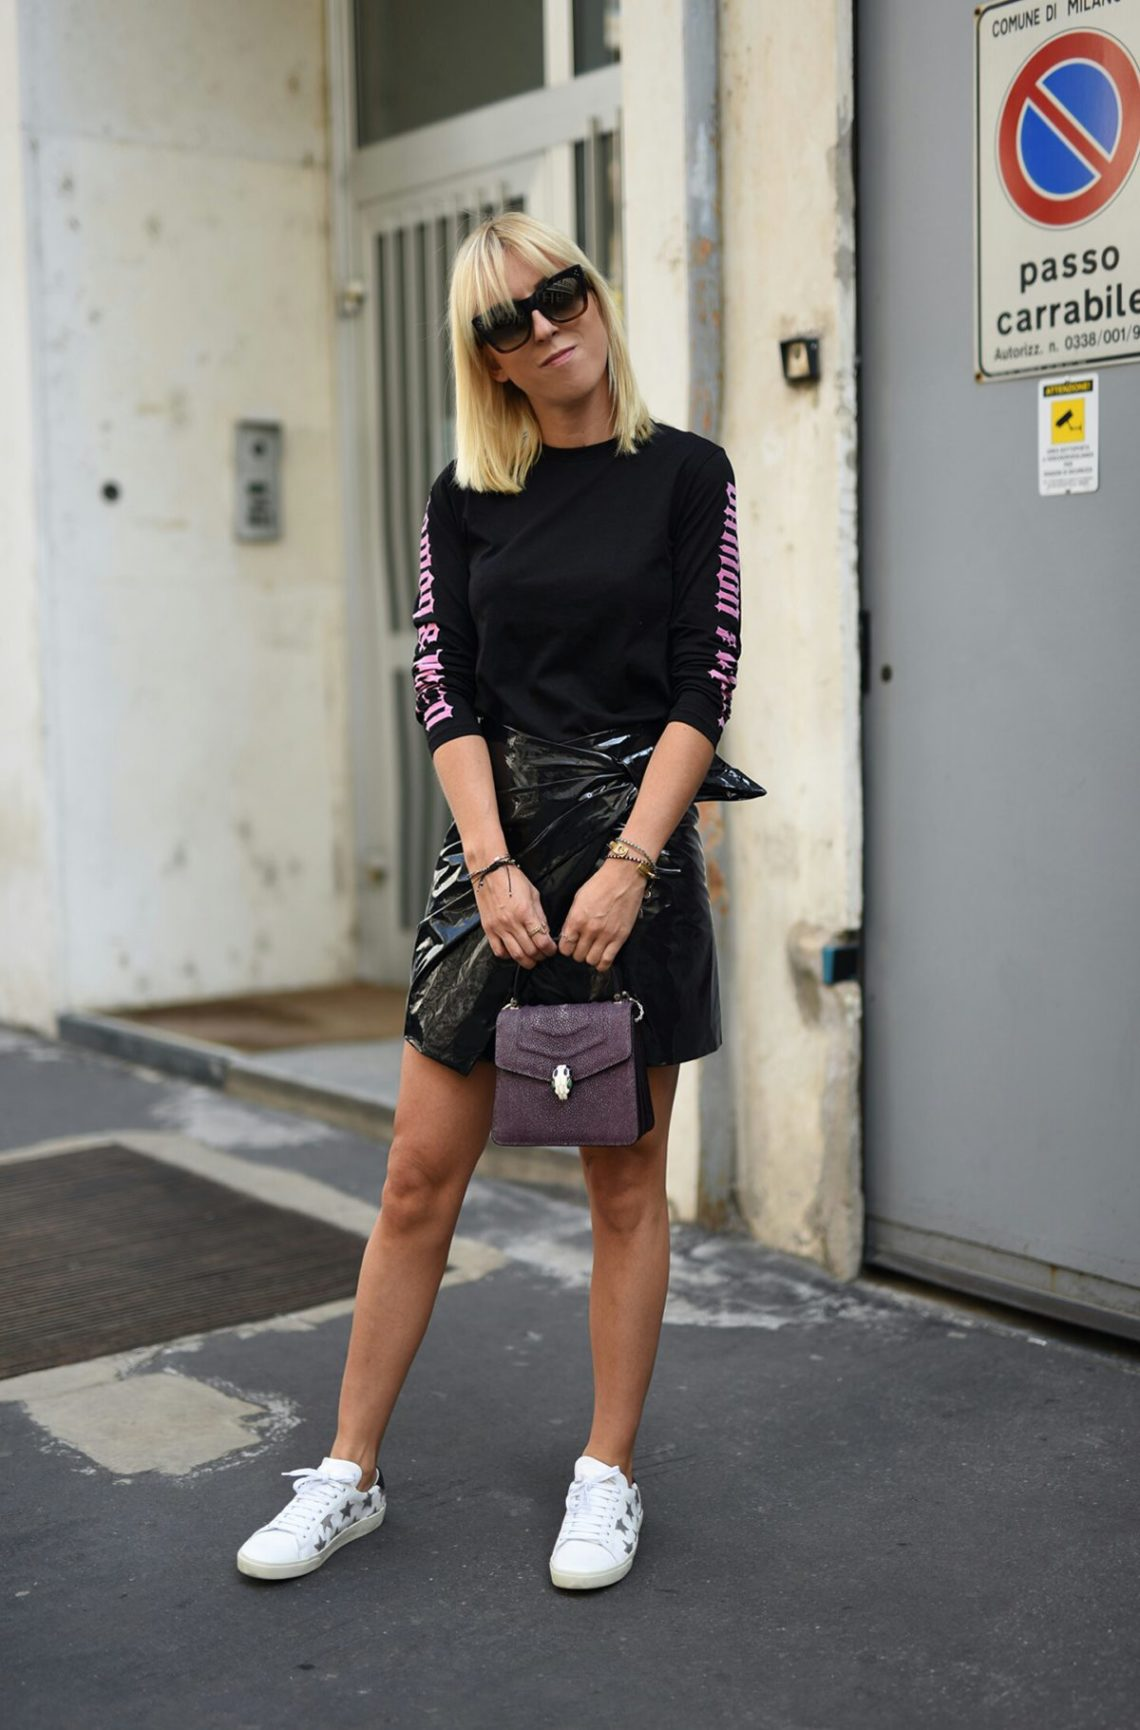 isabel-marant-leather-skirt-tanja-trutschnig-blogger-bazaar-mfw-saint-laurent-star-sneaker